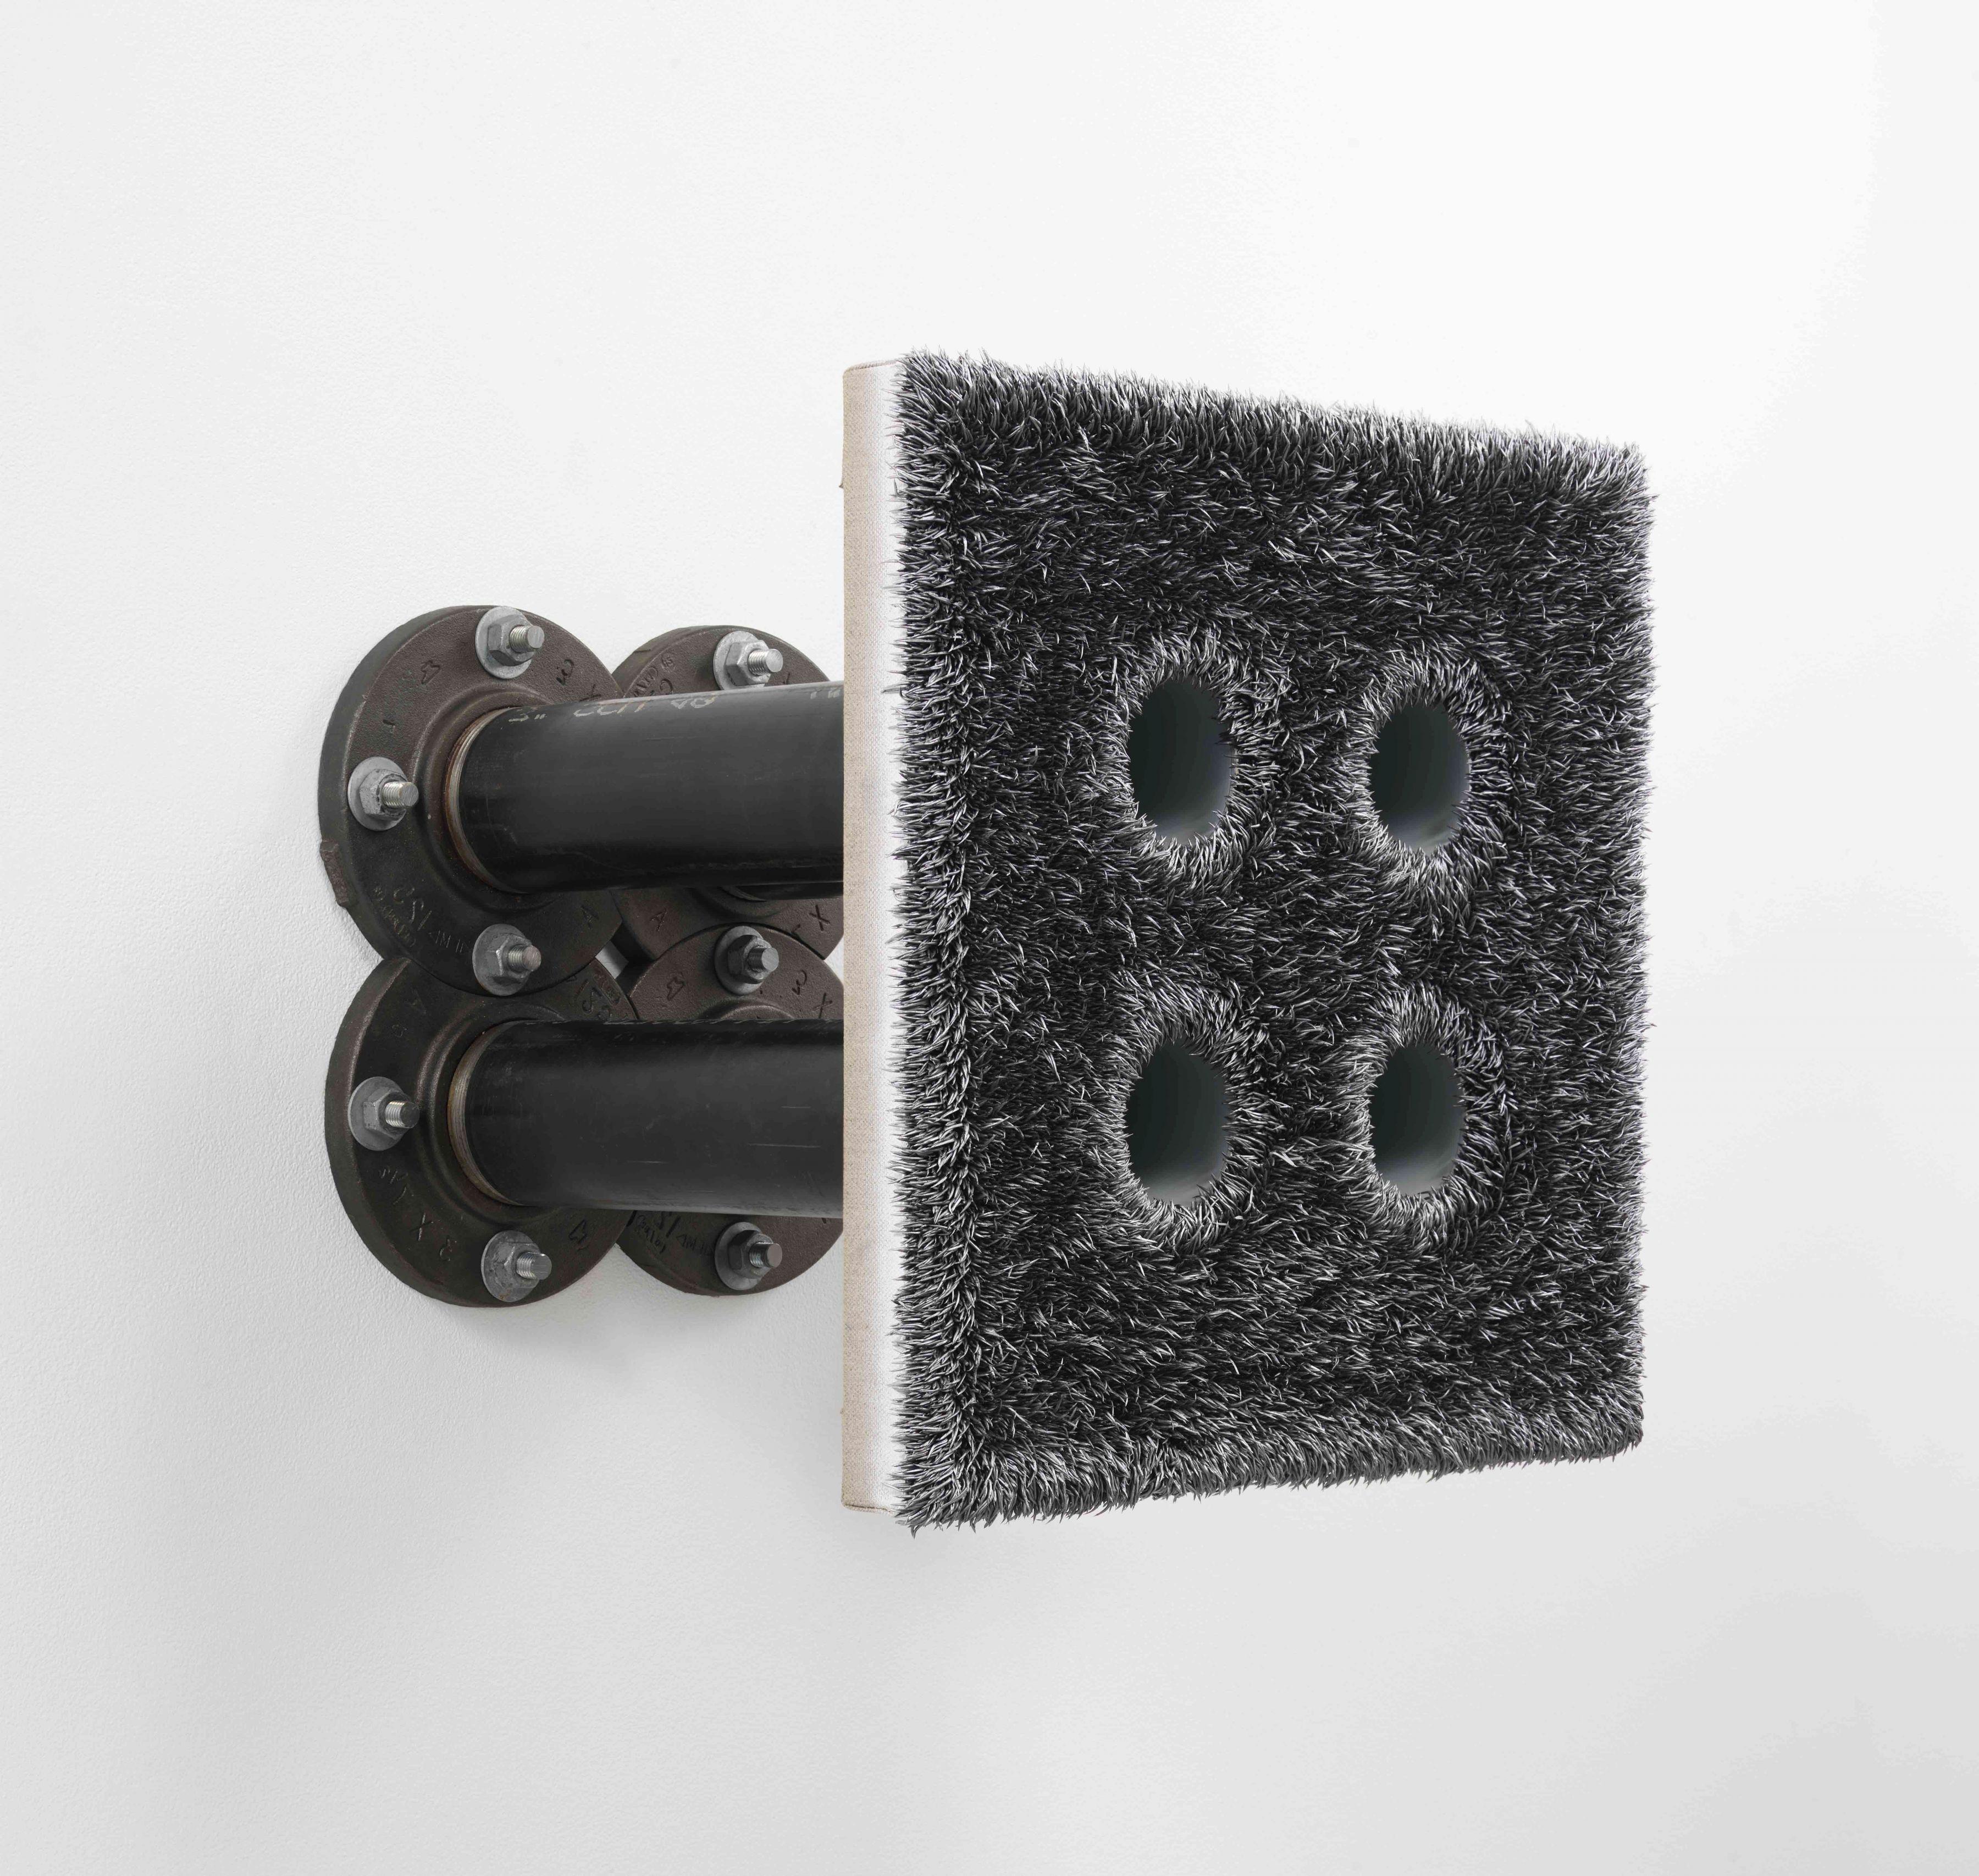 Extruded painting with four holes drilled in it attached to a wall with pipes by Donald Moffett